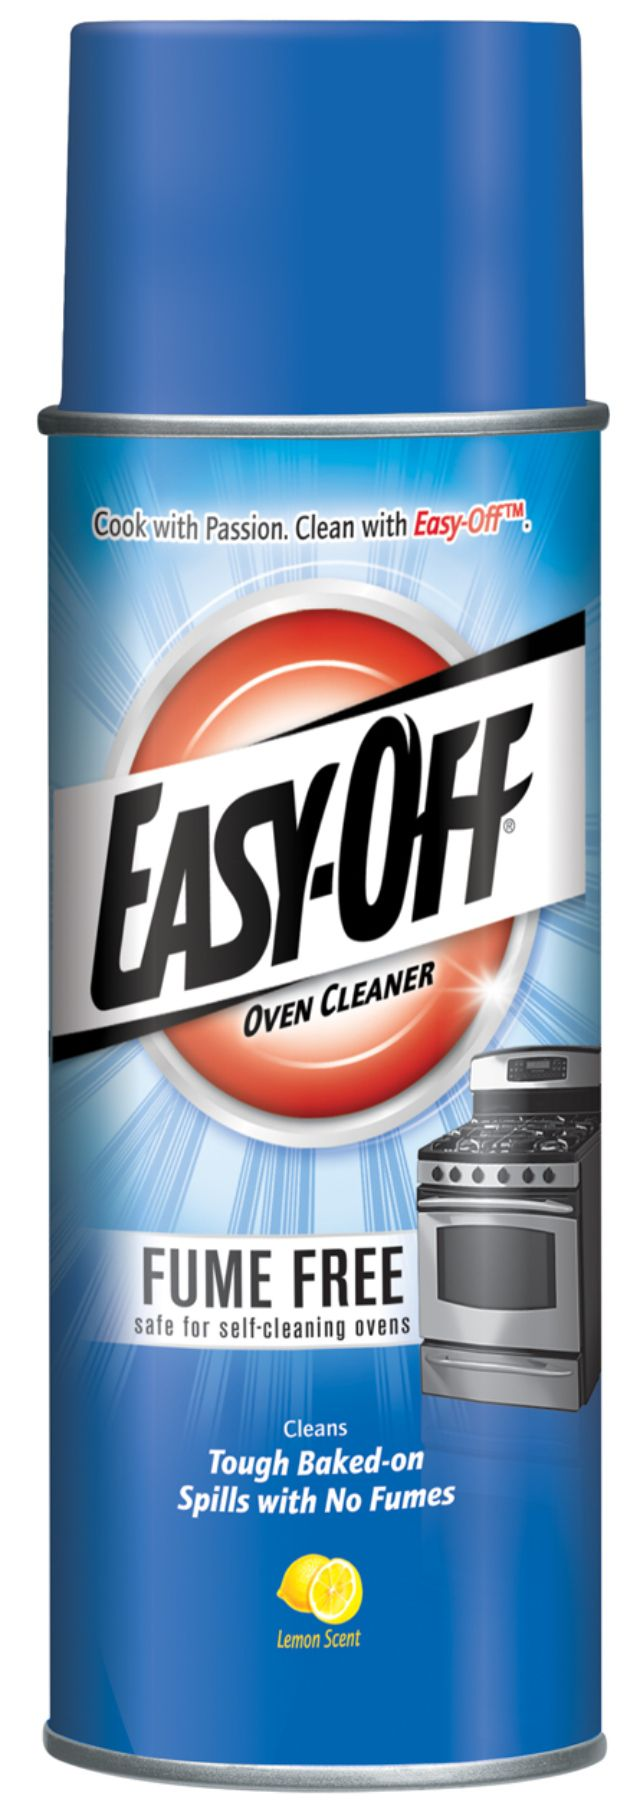 easy-off-cleaner